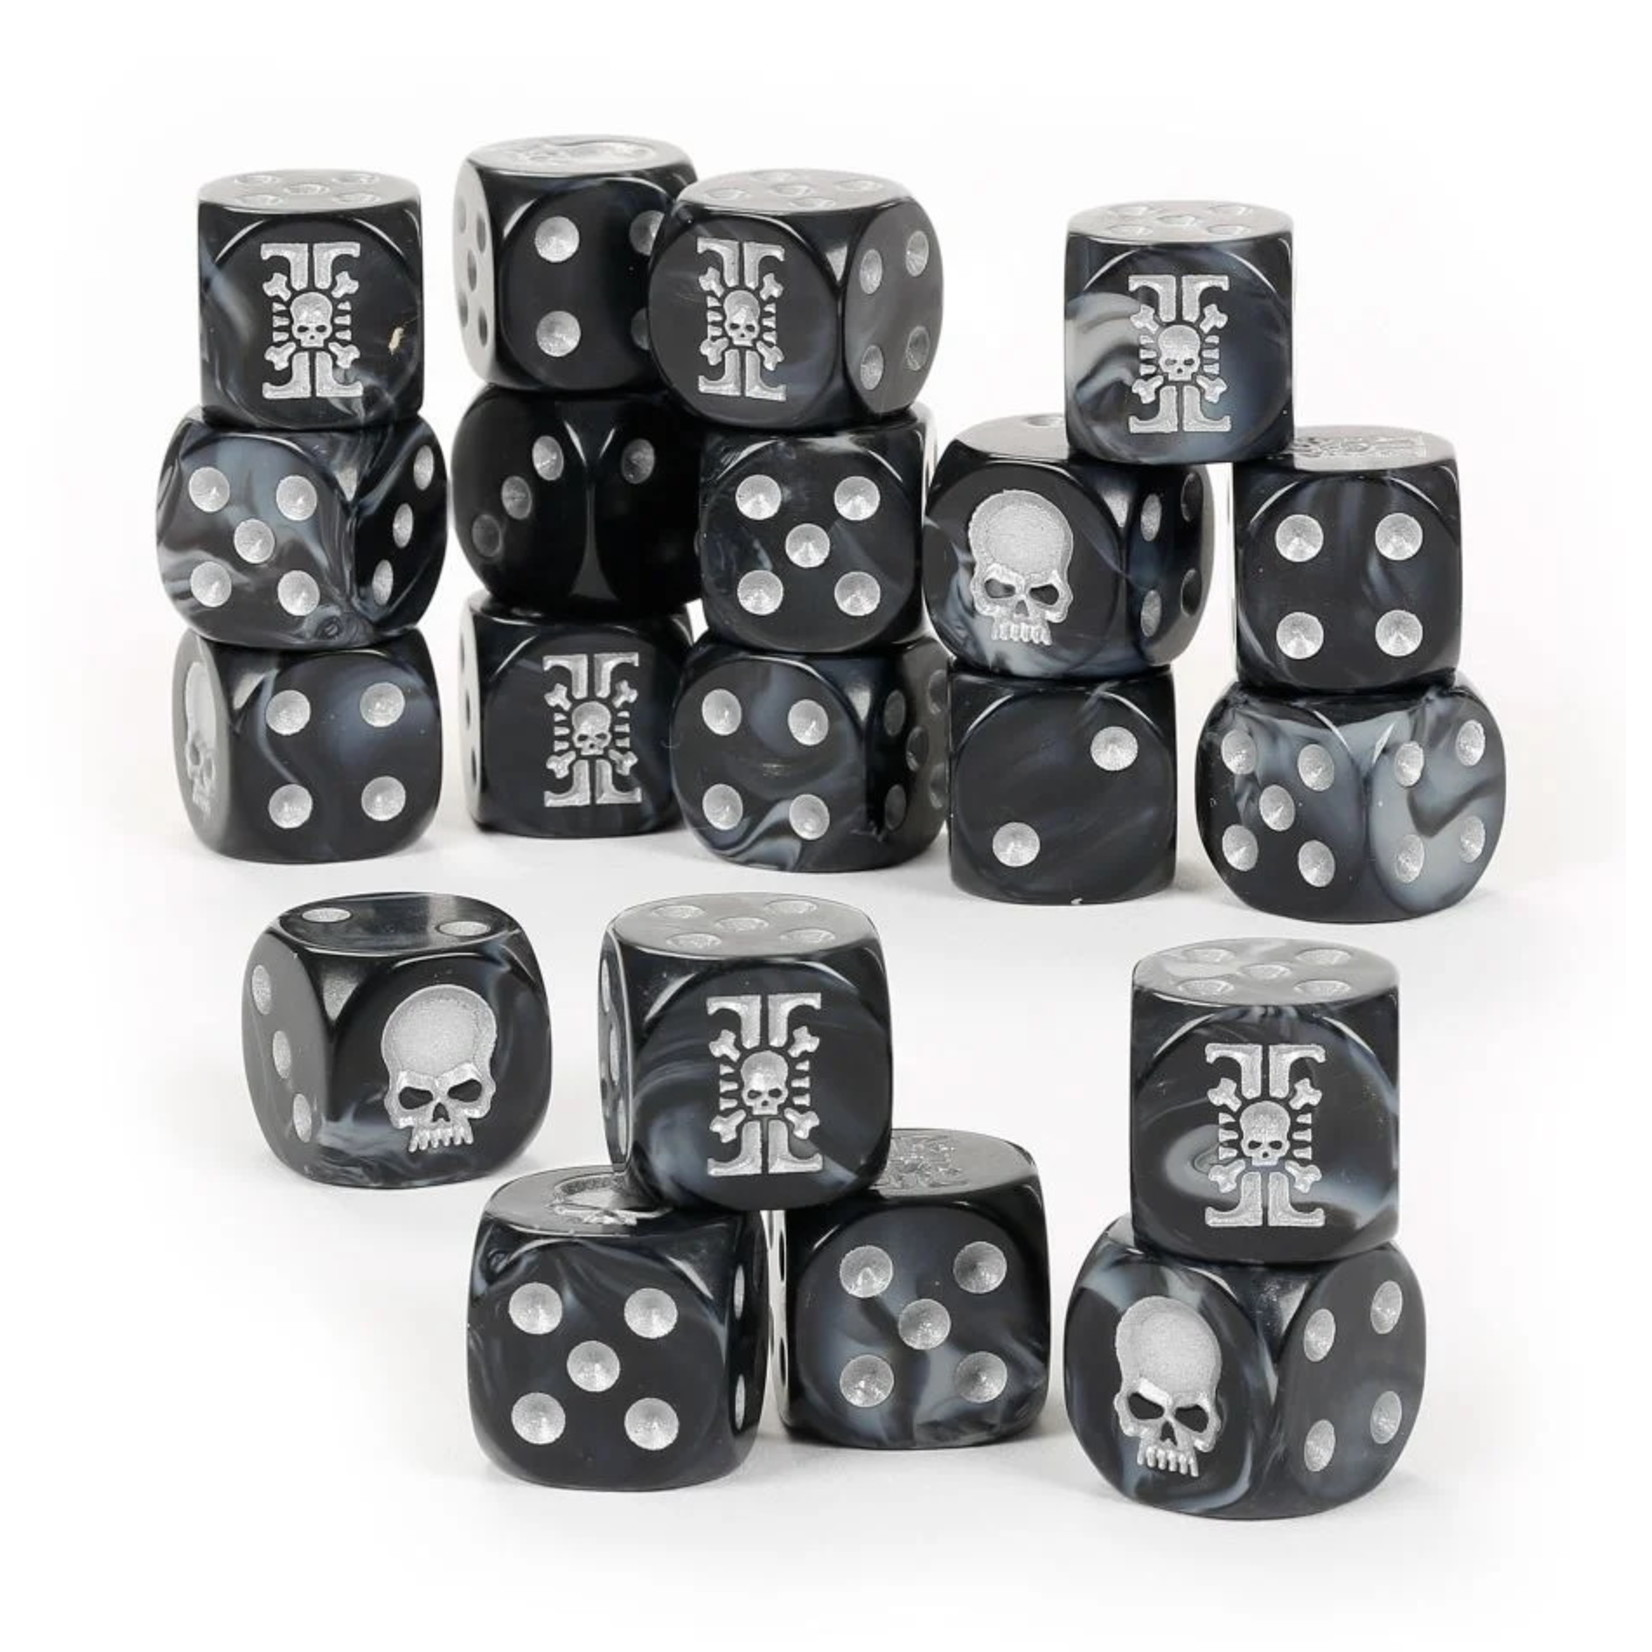 Games Workshop Deathwatch Dice Set